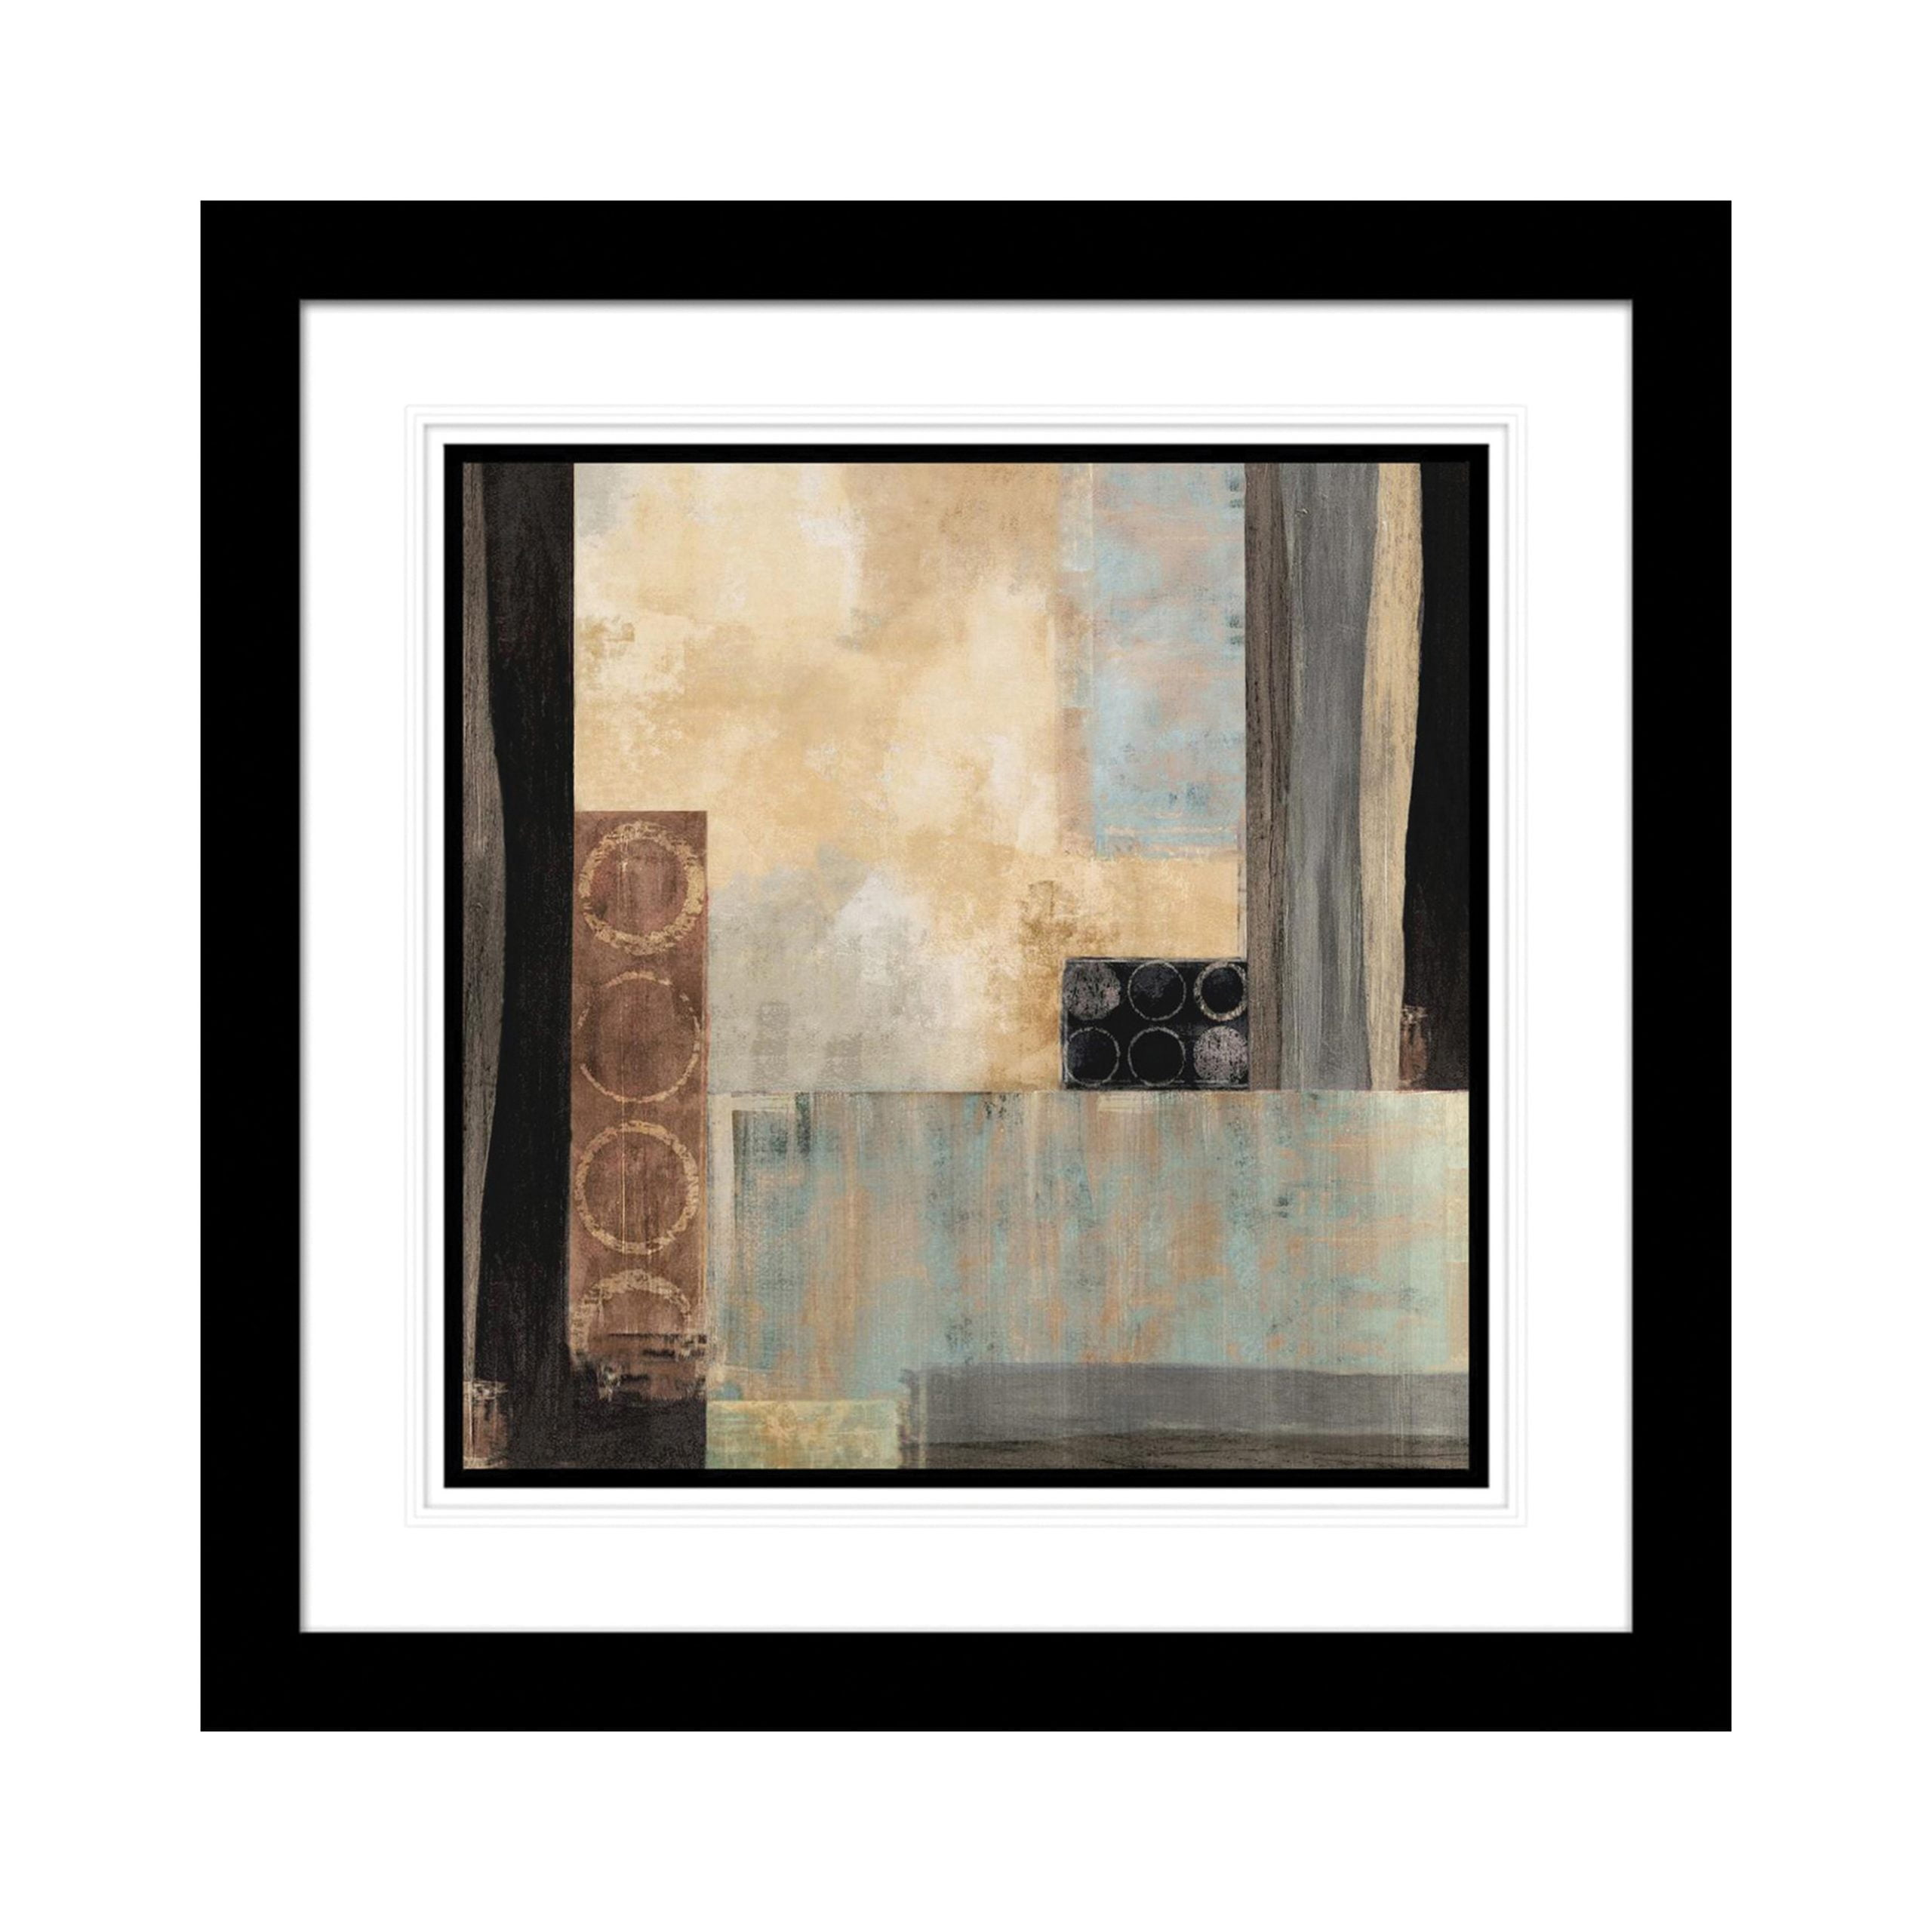 Abstract Cool Square Artwork with Fornari Black Frame